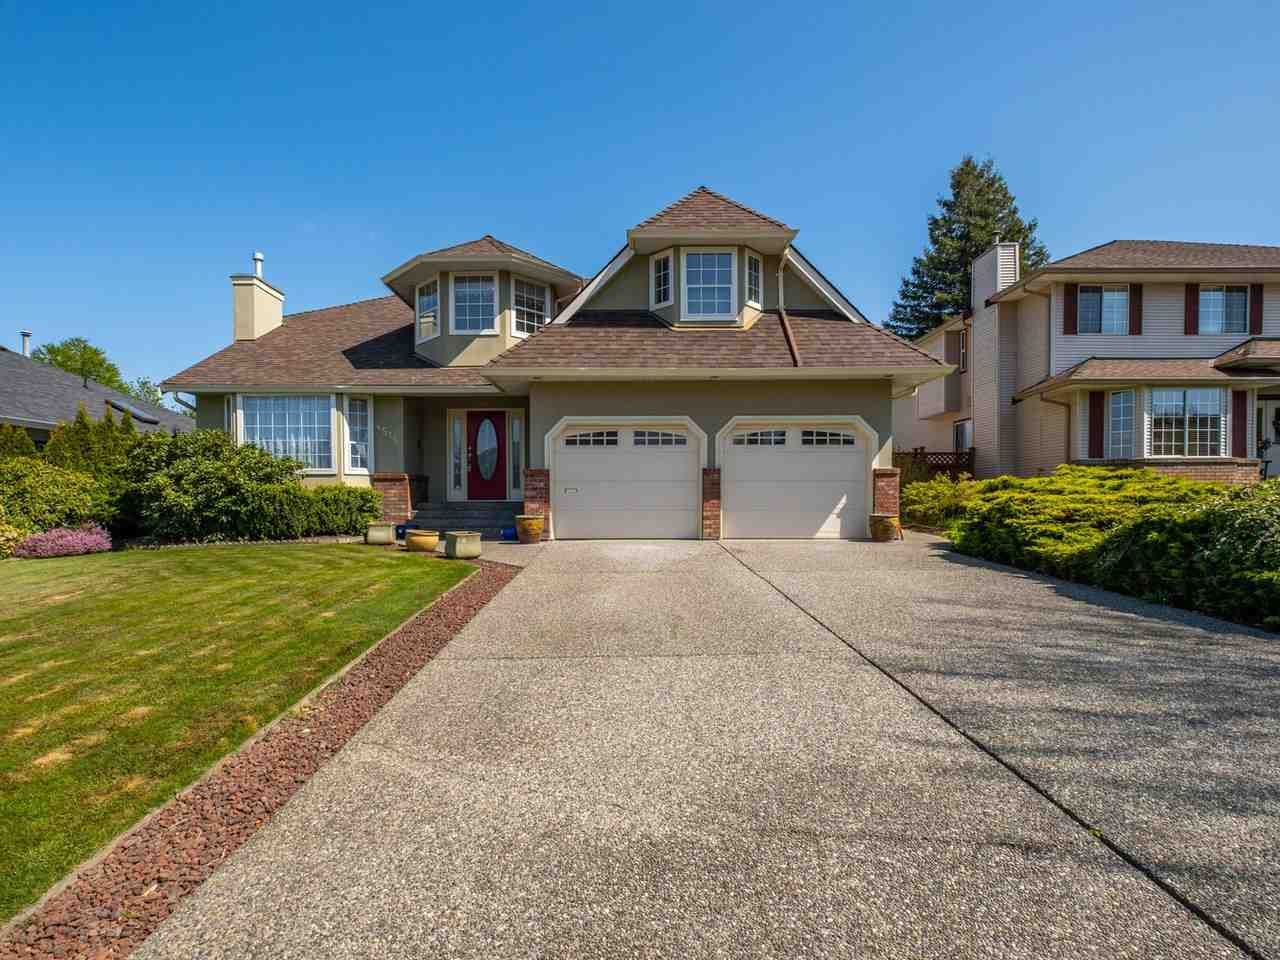 Main Photo: 4516 217A Street in Langley: Murrayville House for sale : MLS®# R2570732